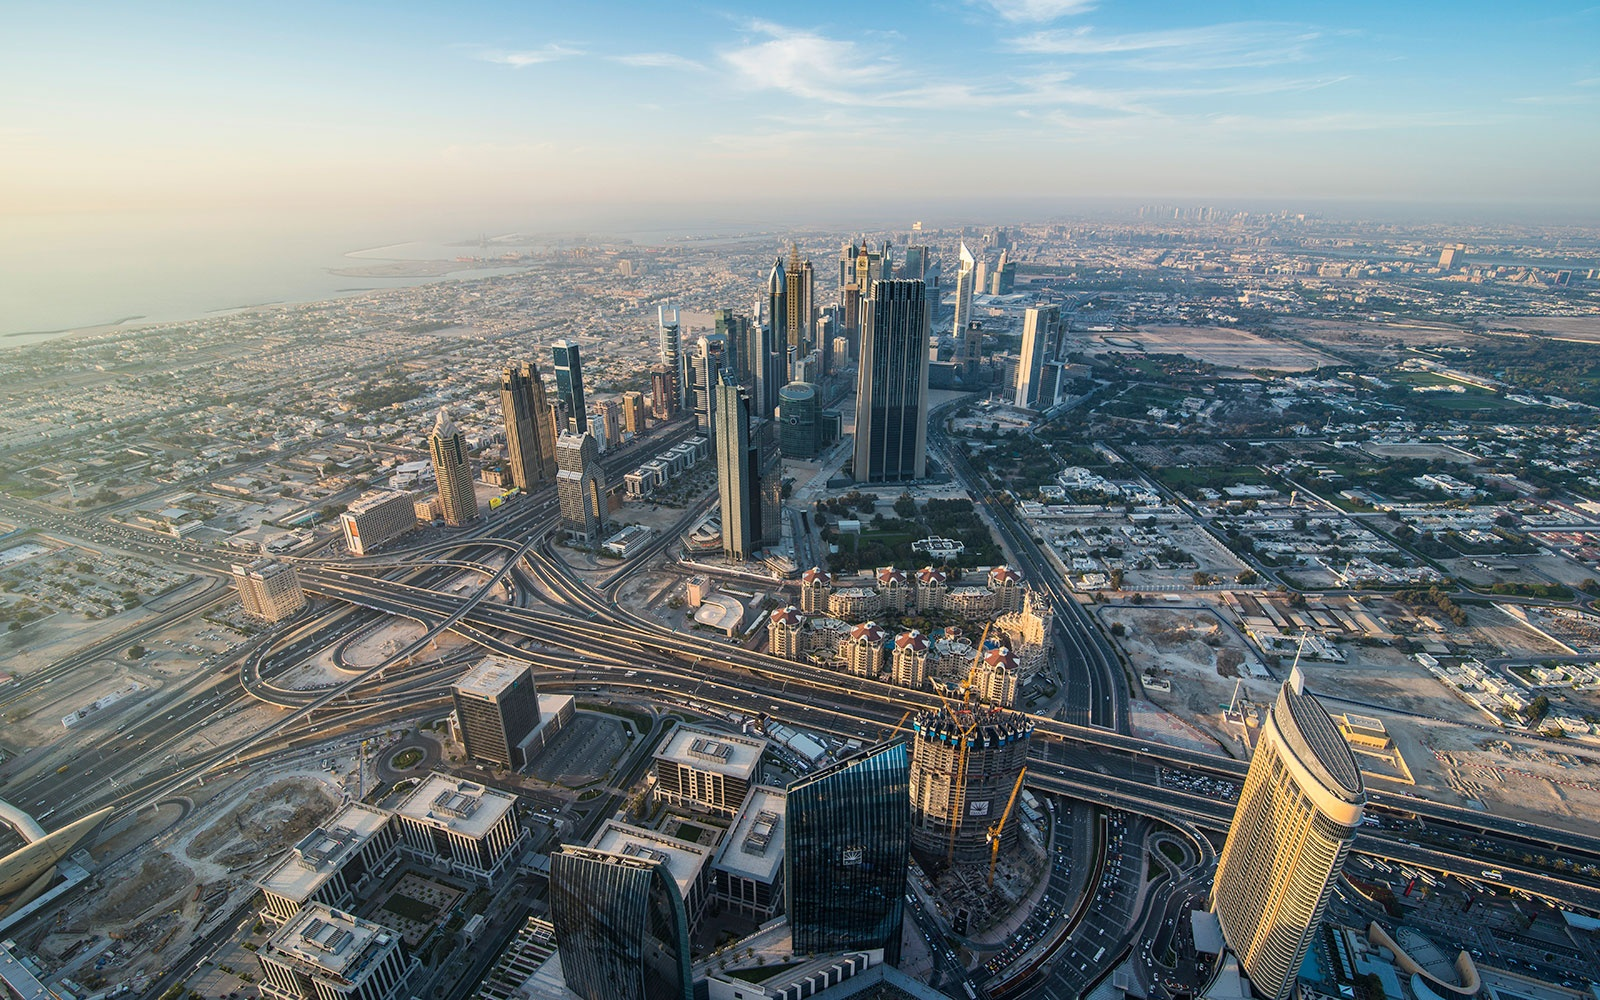 26 Apr 2014, Dubai, United Arab Emirates --- View from Burj Khalifa, Dubai, Emirate of Dubai, United Arab Emirates, Asia --- Image by © Michael Runkel/imageBROKER/Corbis